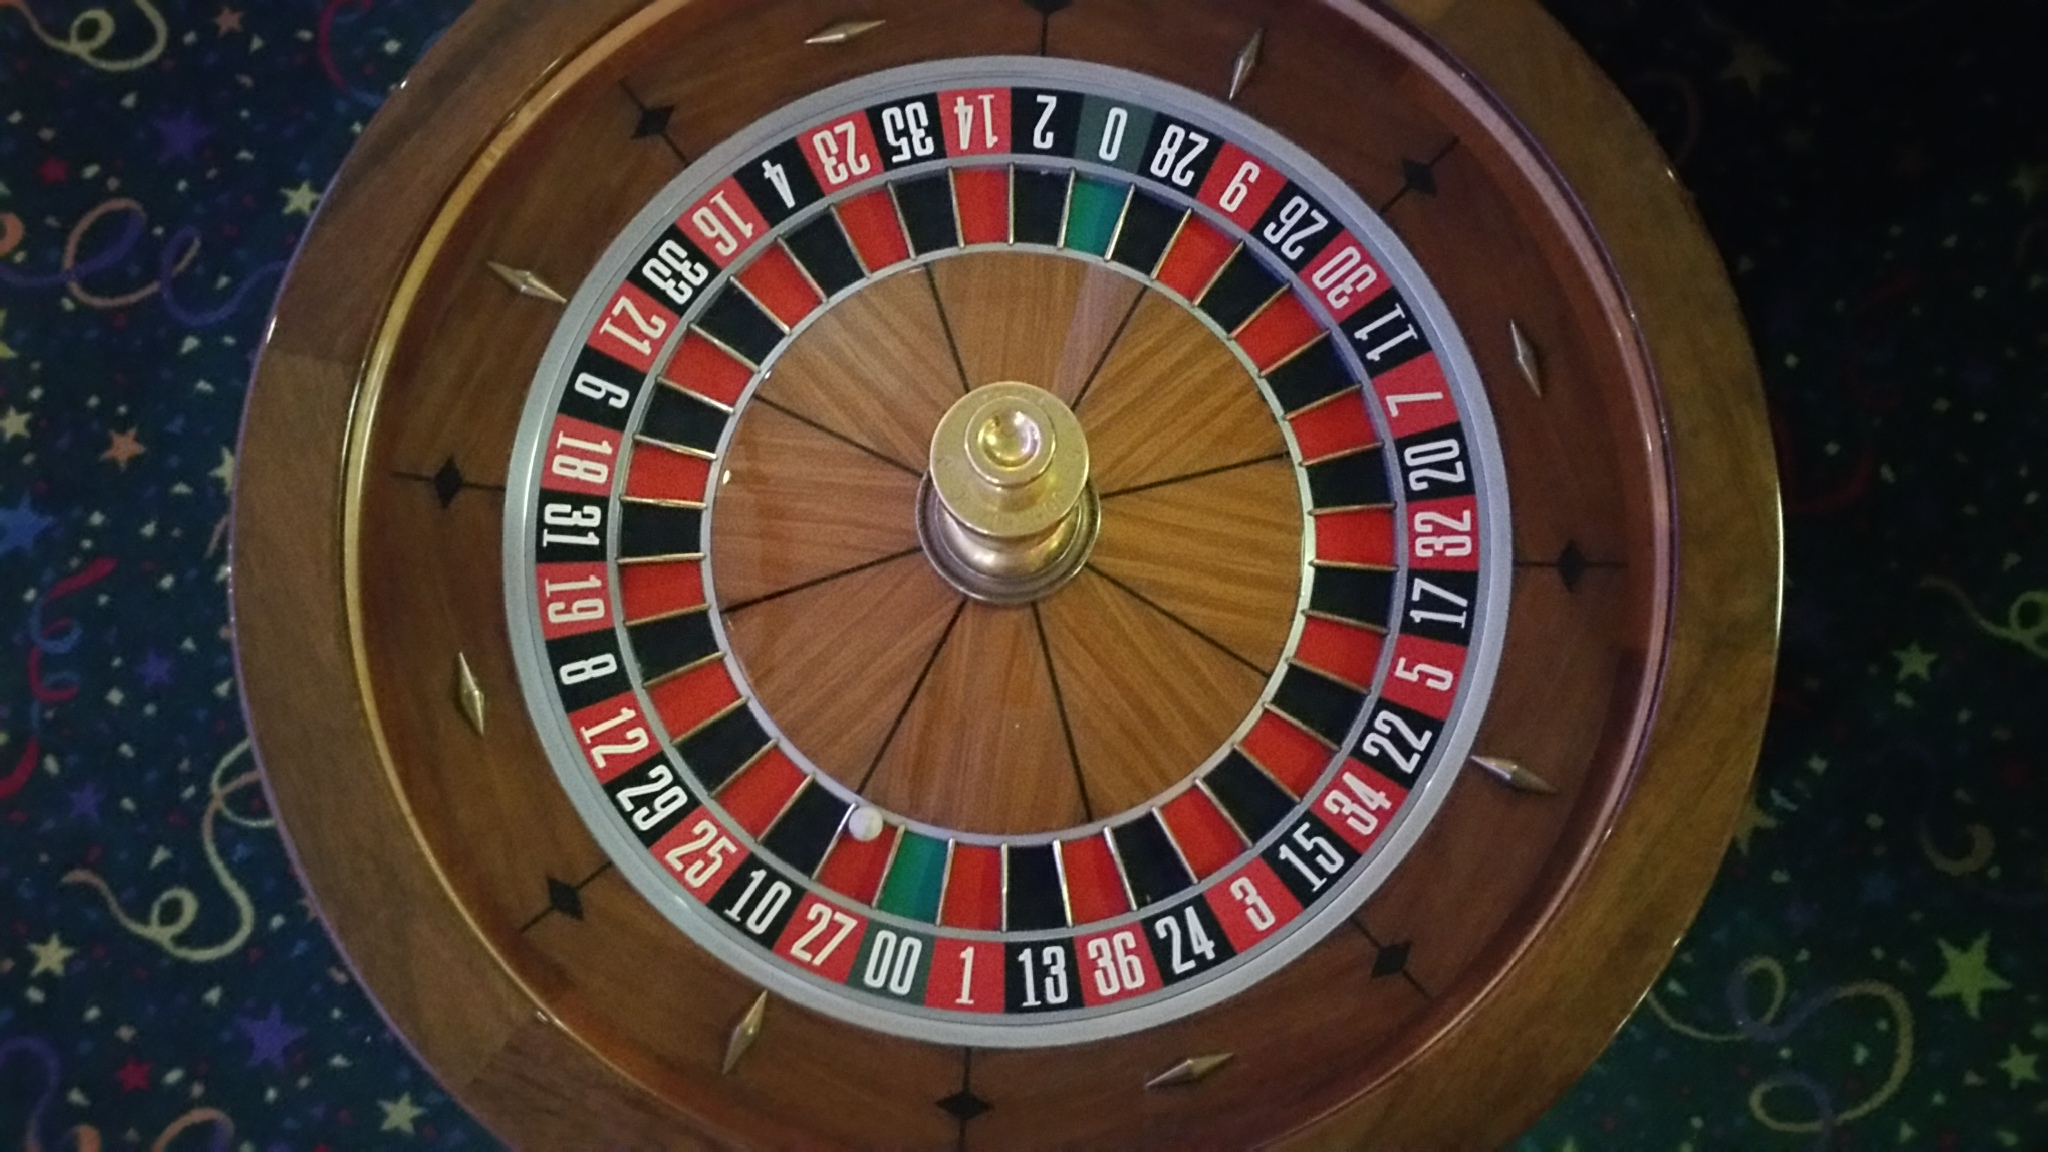 Roulette Wheel 32 Quot John Huxley Slot Machines For Sale